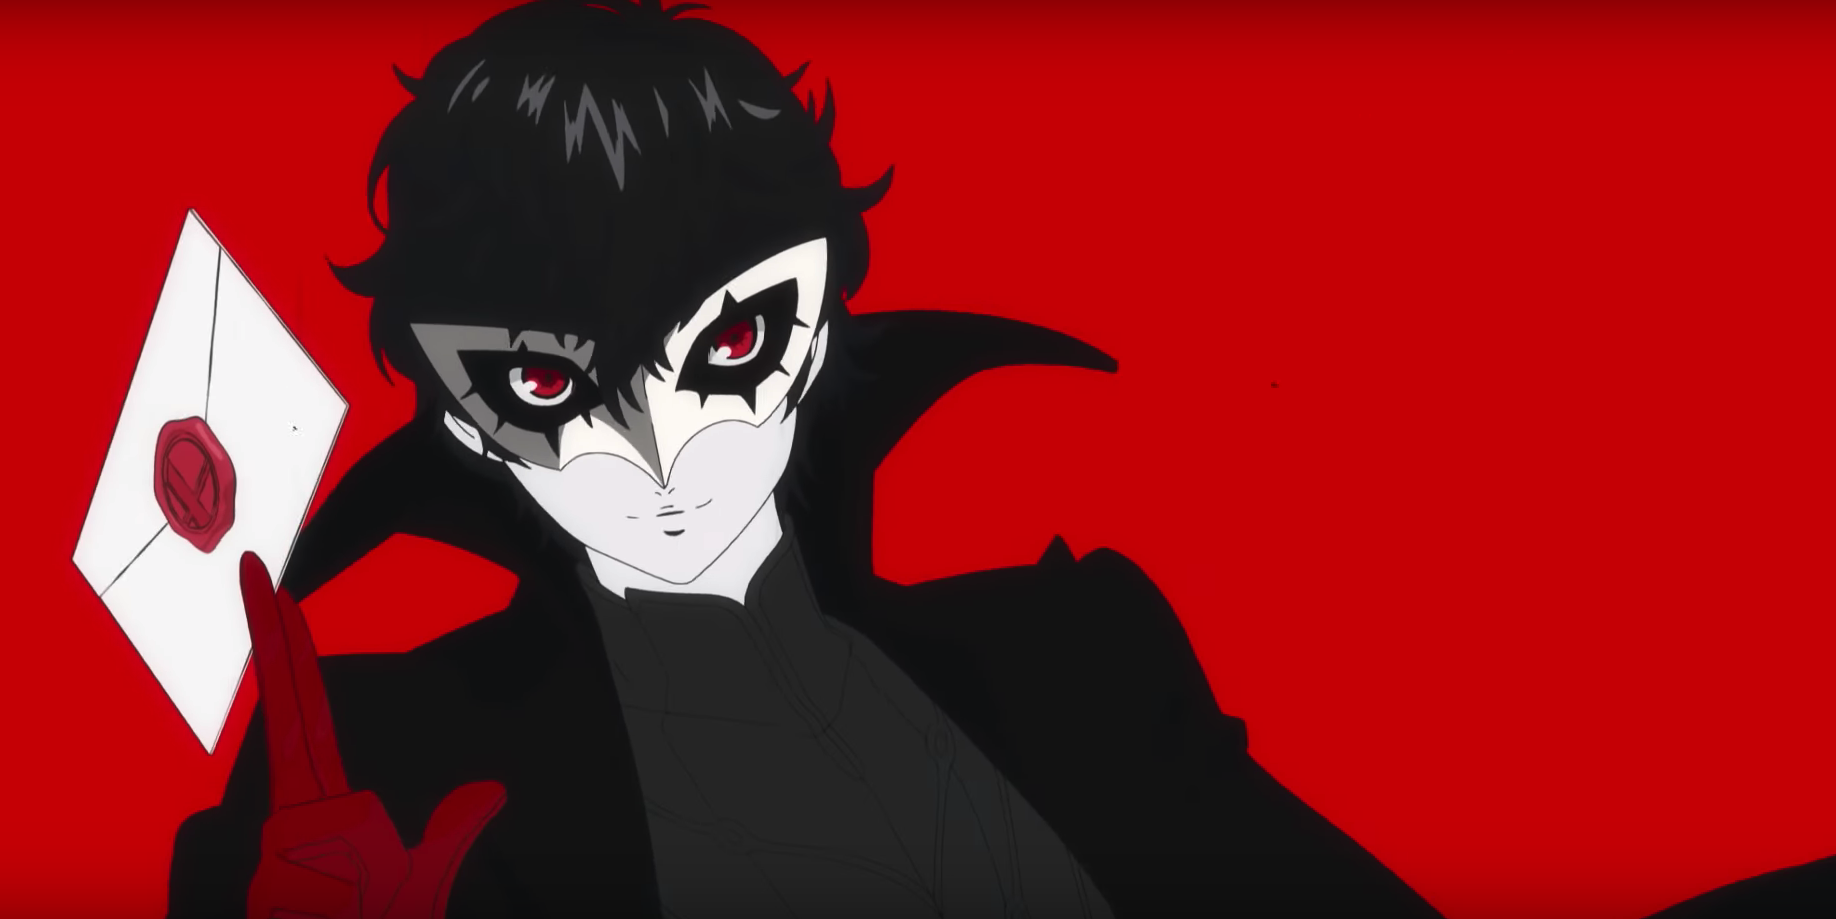 Smash Ultimate' Tier List: How Joker Ranks in Early Reviews by Pro